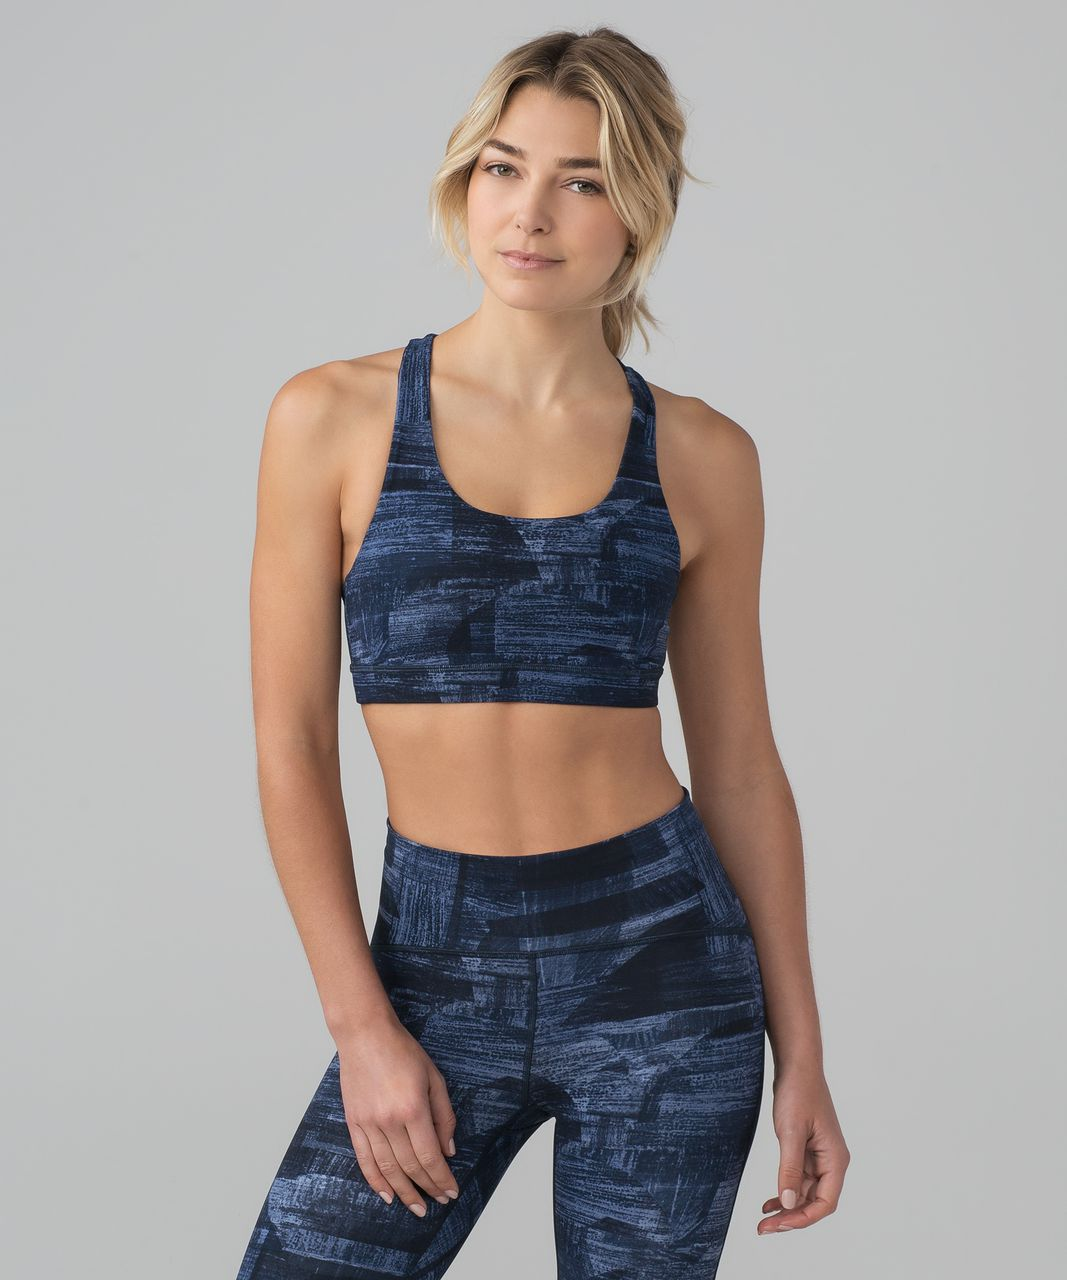 Lululemon Invigorate Bra - Transition Multi Midnight Navy